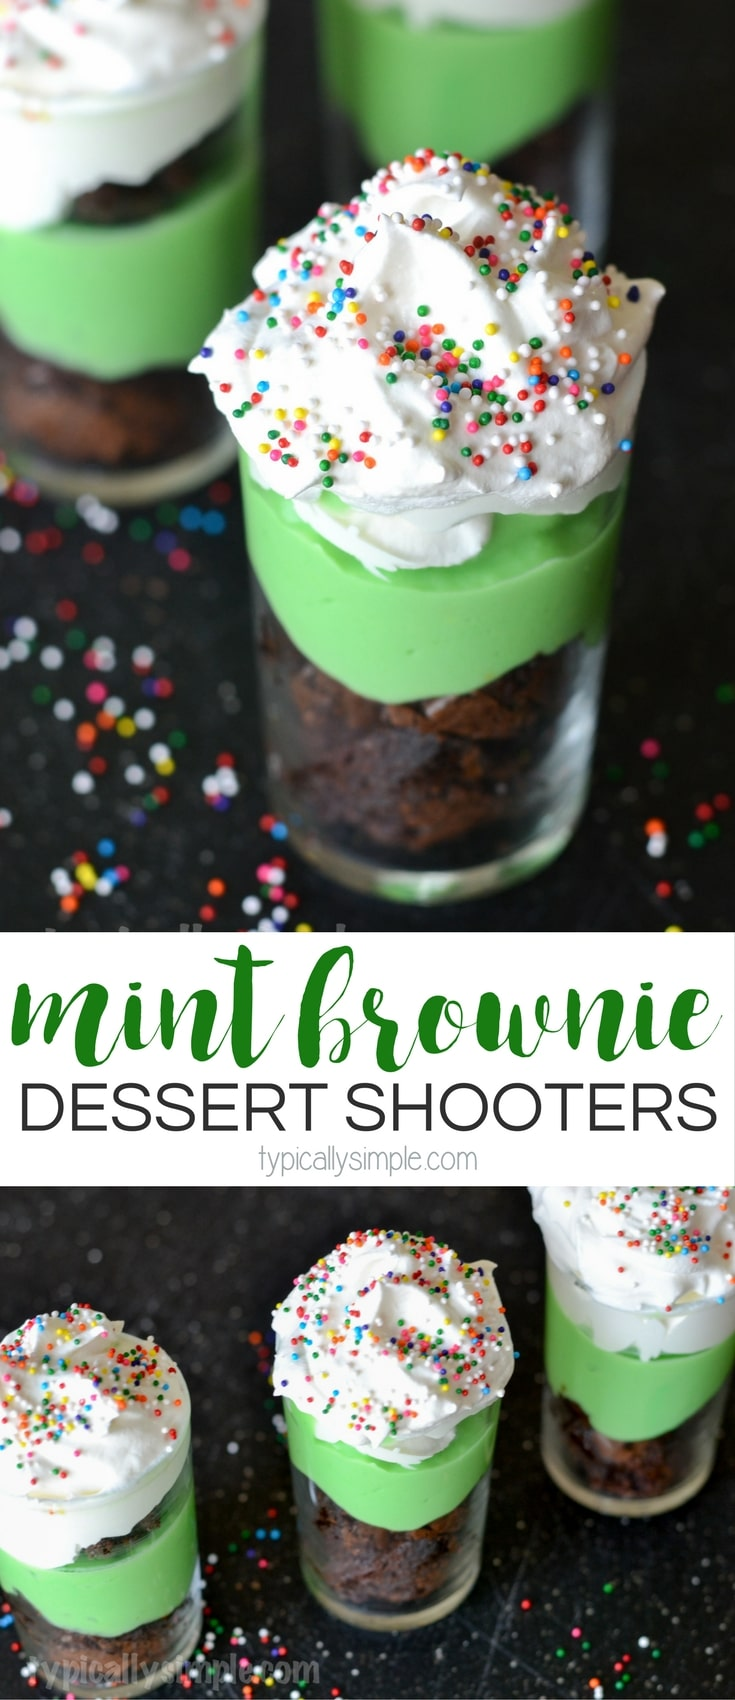 These mint brownie dessert shooters are super easy to make and oh so yummy to eat! A festive treat that is perfect for St. Patrick's Day!